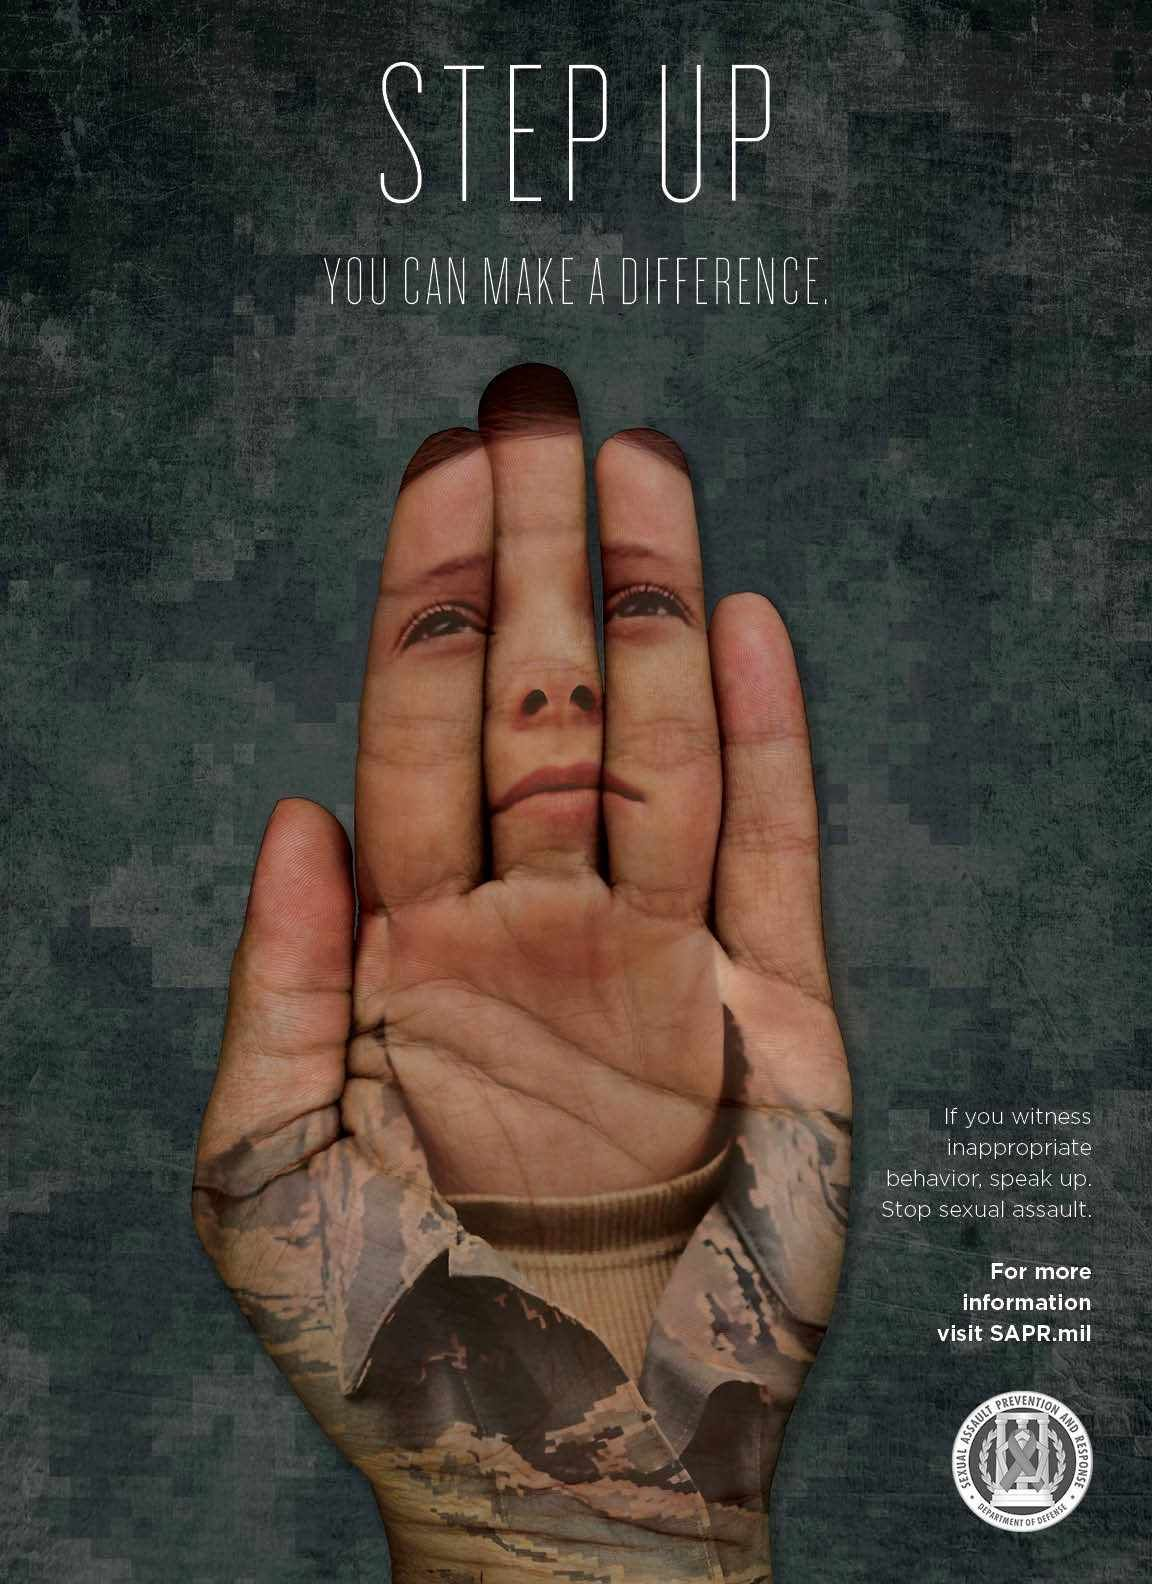 Step up! Strong #ad against sexual assault in the Department of Defense